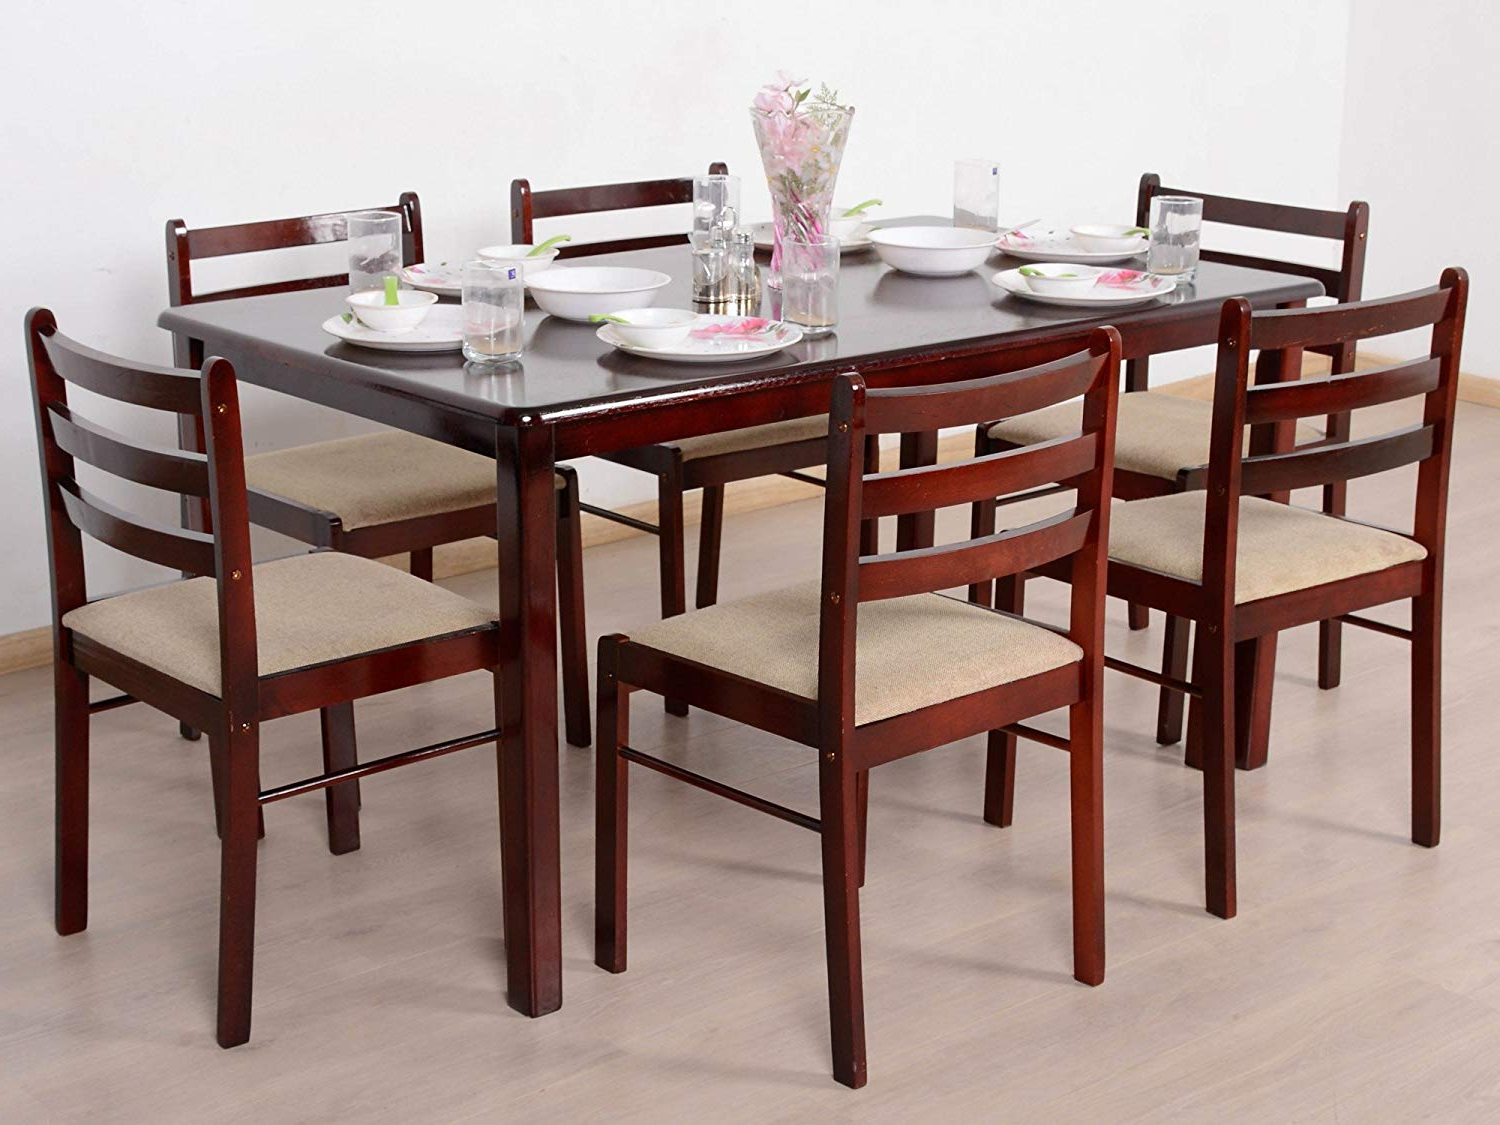 Best And Newest 6 Seater Retangular Wood Contemporary Dining Tables With Regard To T2A Javint Six Seater Contemporary Solid Wood Dining Table (View 9 of 25)